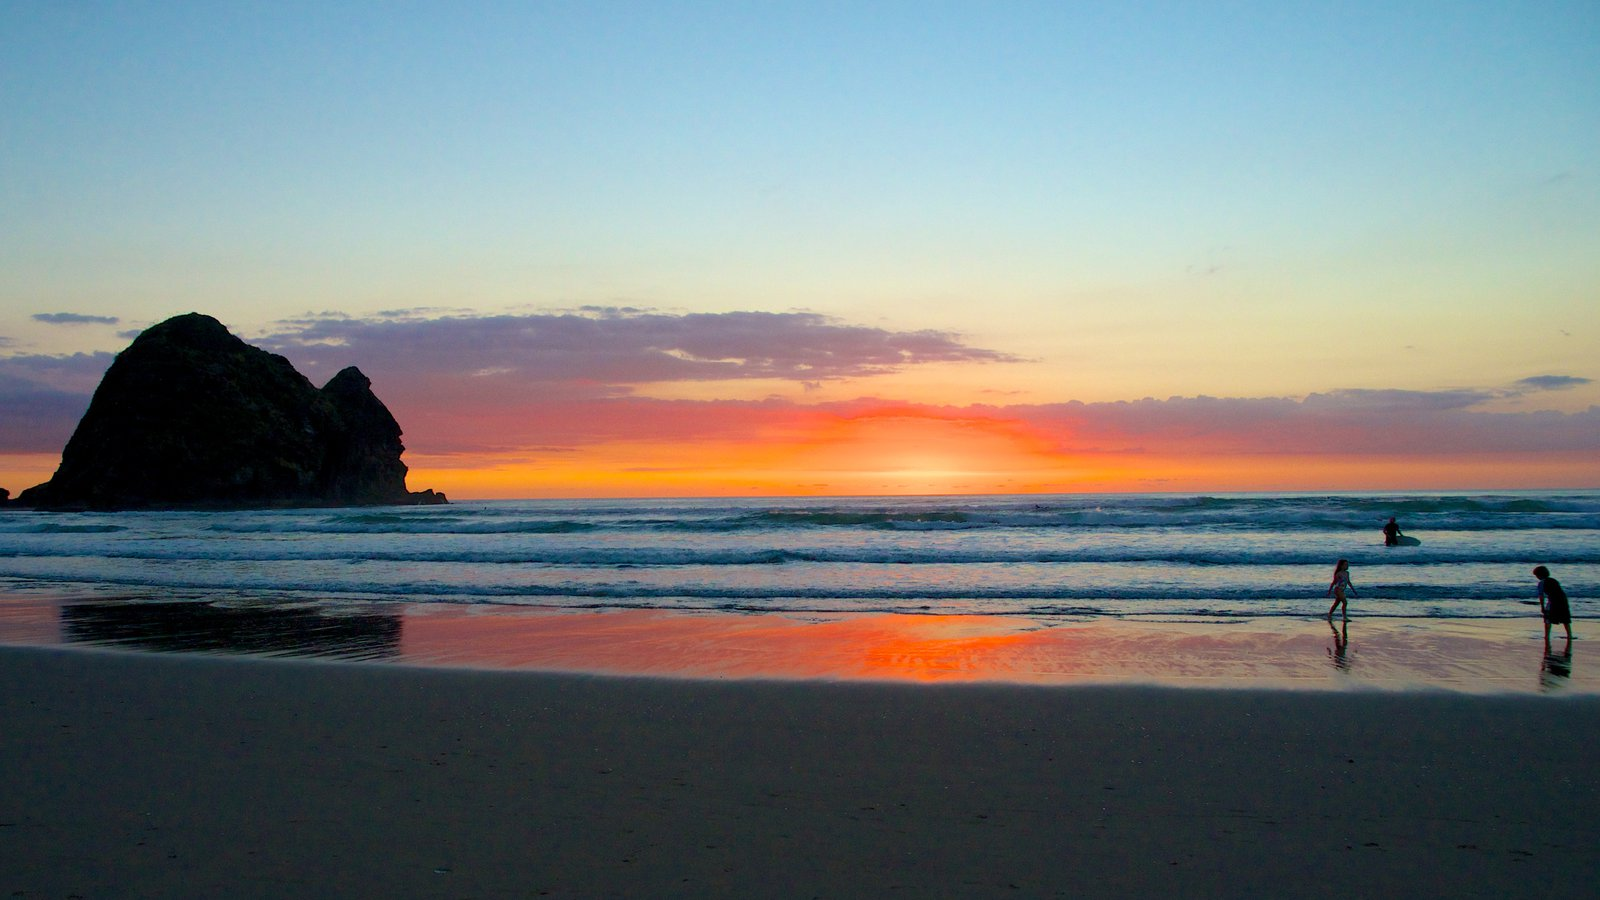 Piha Beach showing a sandy beach, landscape views and swimming